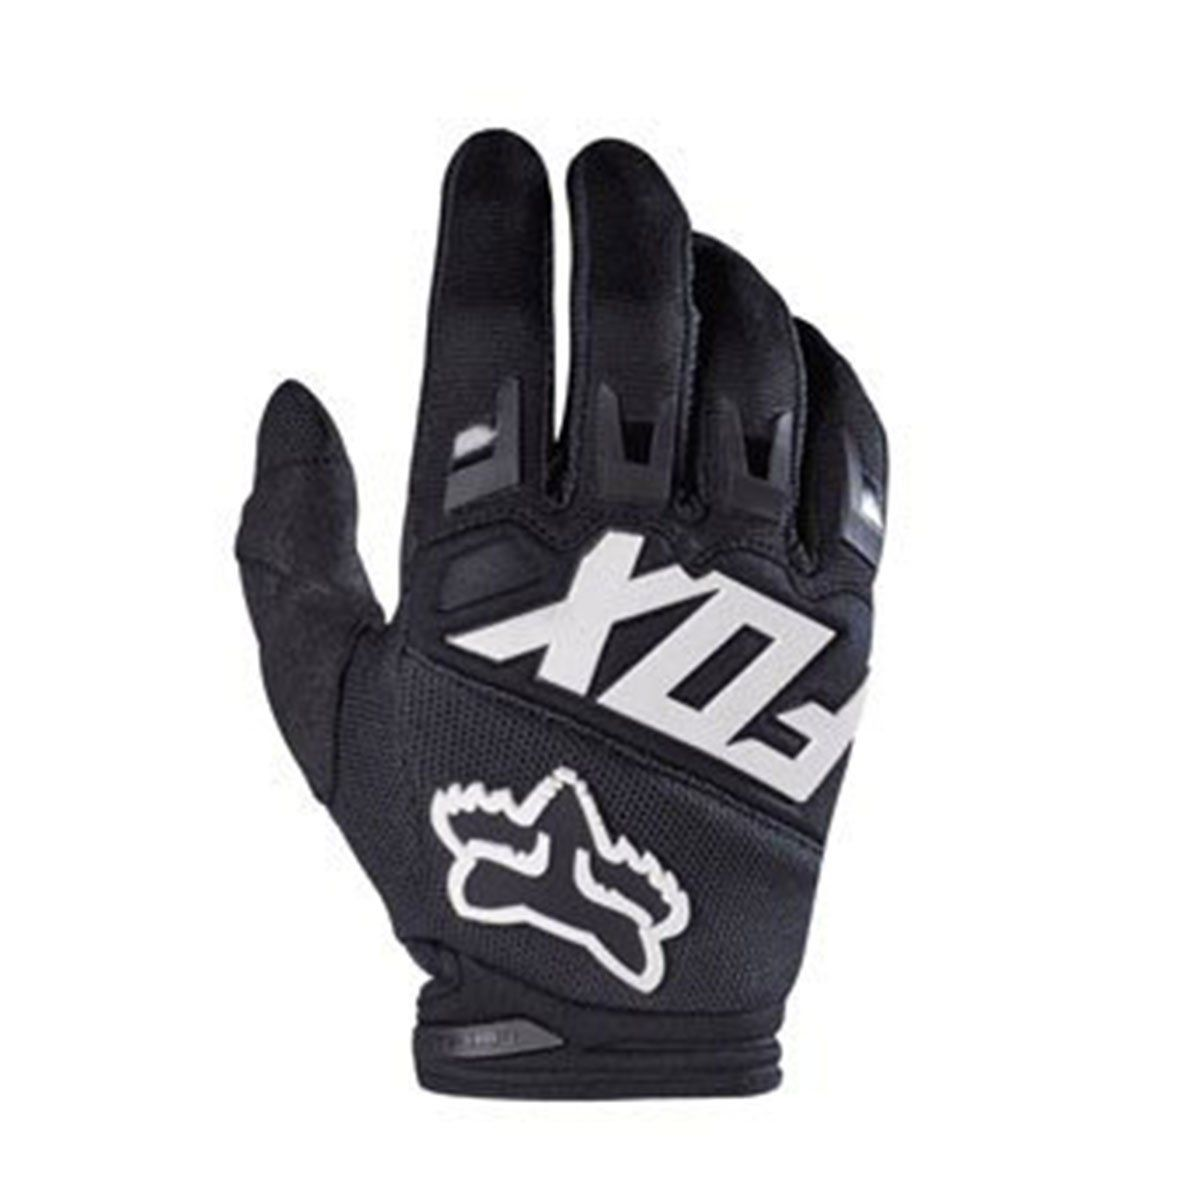 Luva de Motocross Fox Dirtpaw Race 17 Black